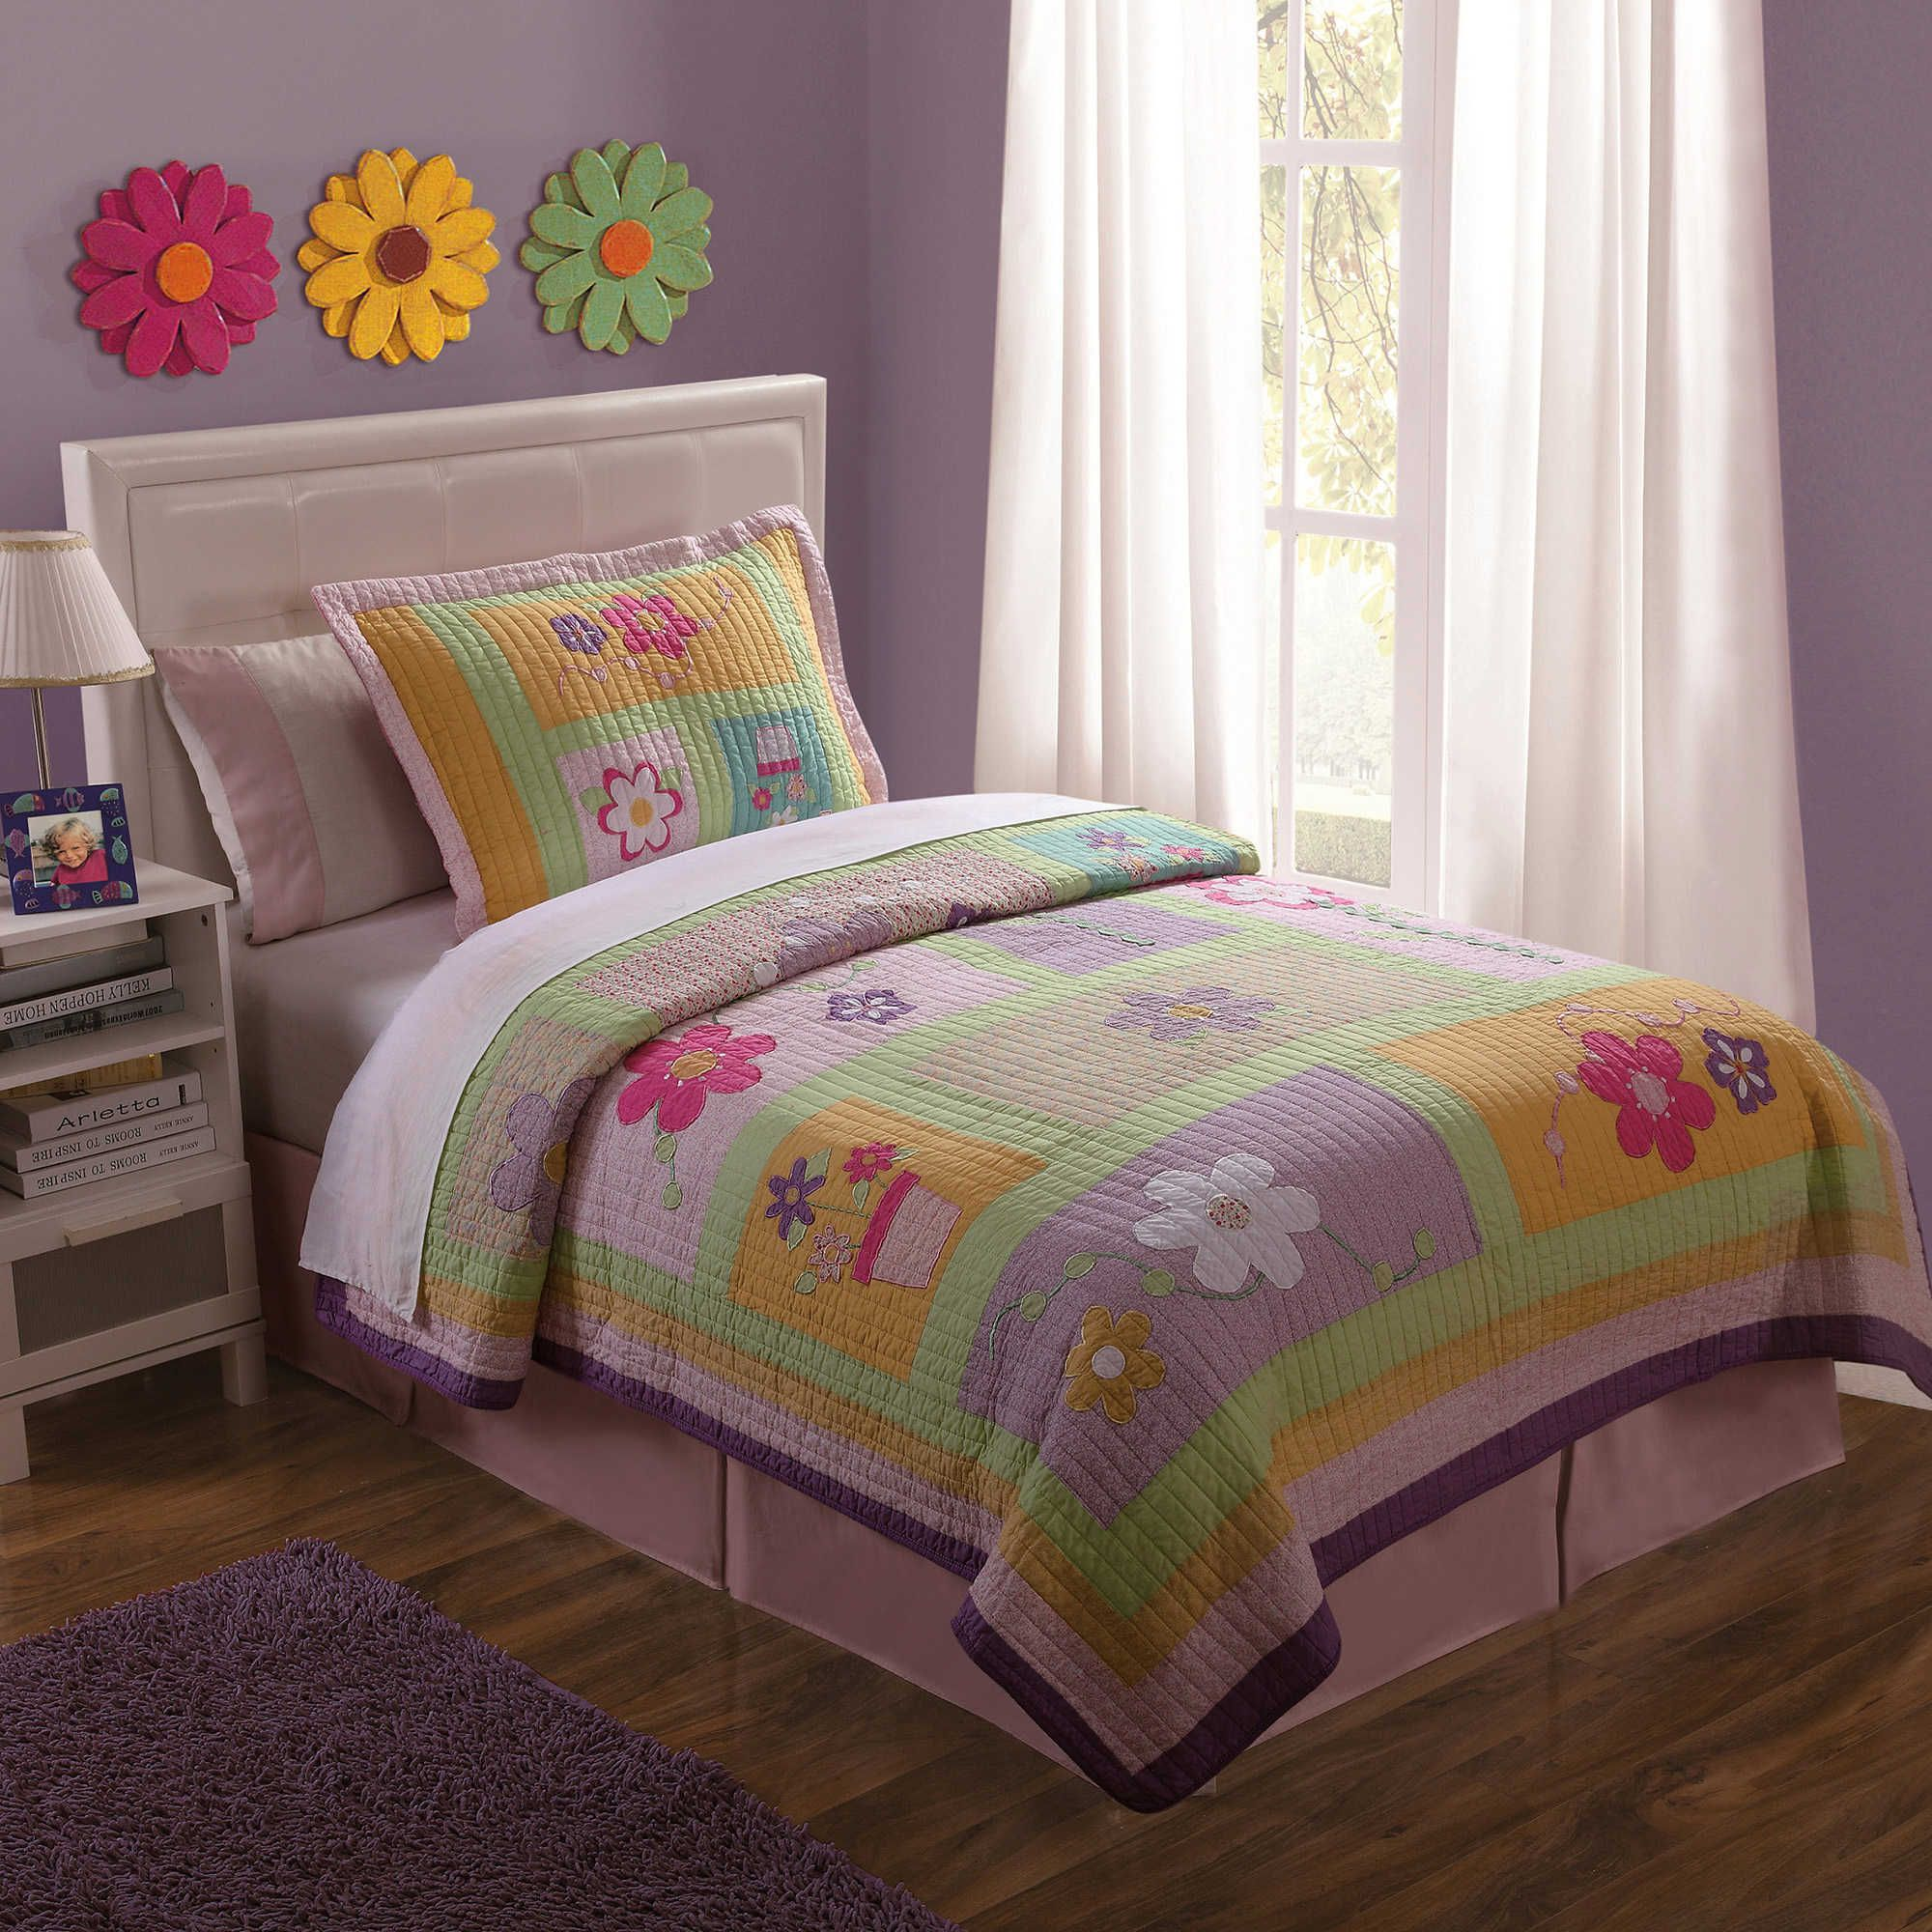 7480793282724m 2000 215 2000 Girl Beds Quilt Sets Girls